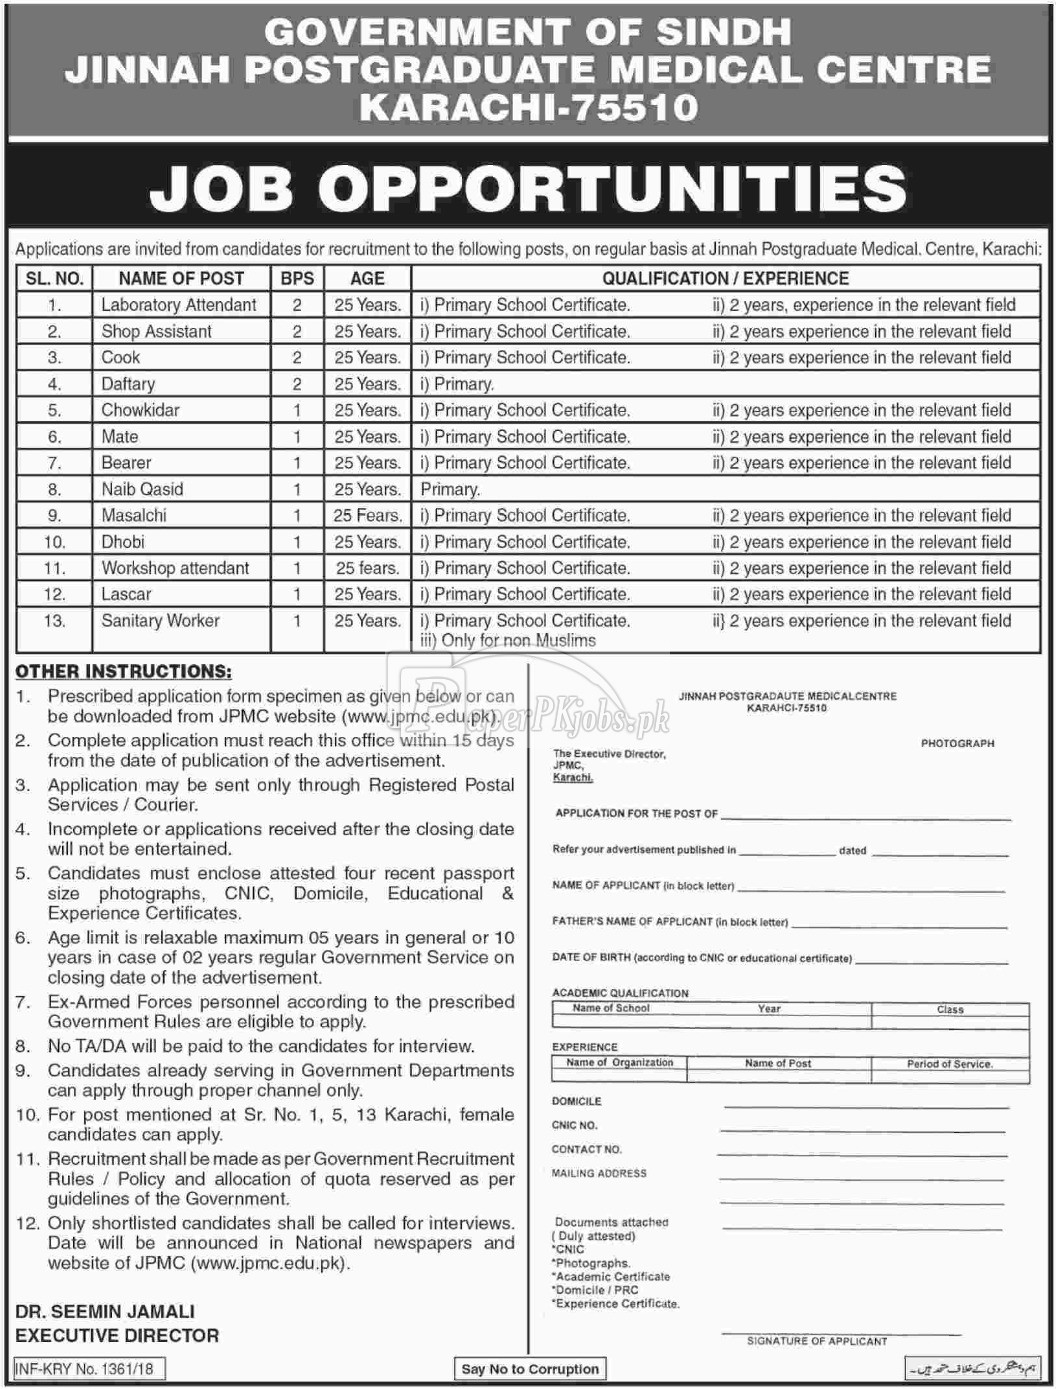 Jinnah Postgraduate Medical Centre Karachi Jobs 2018